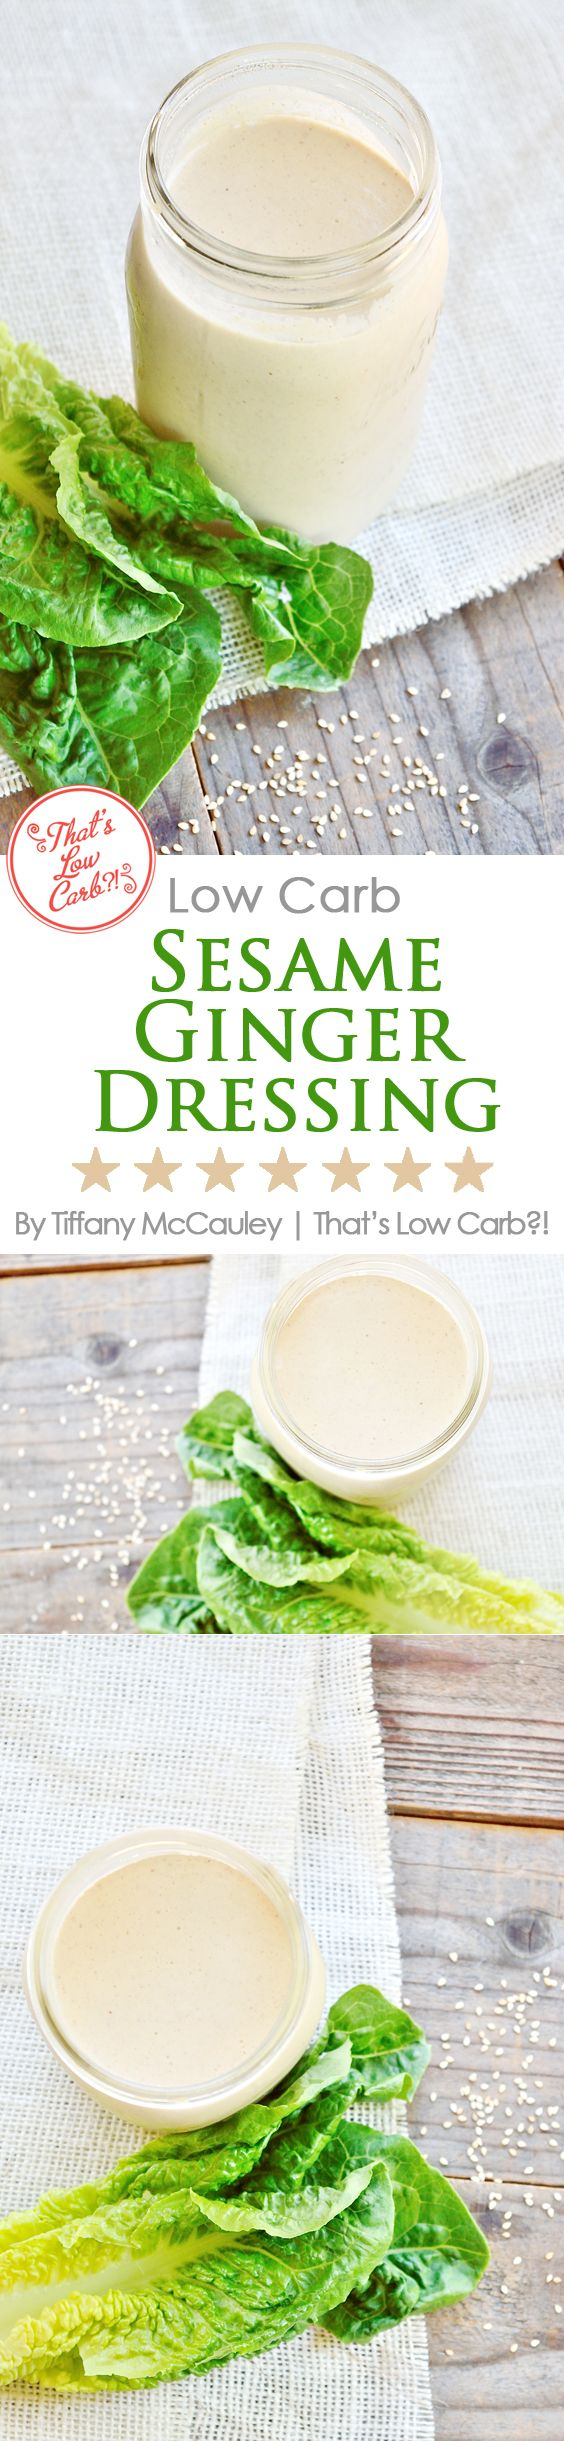 If delicious dressing is your vice when it comes to healthy, low carb eating, then this Low Carb Sesame Ginger Dressing is the perfect excuse to dig in and have a salad for dinner! ~ http://www.thatslowcarb.com